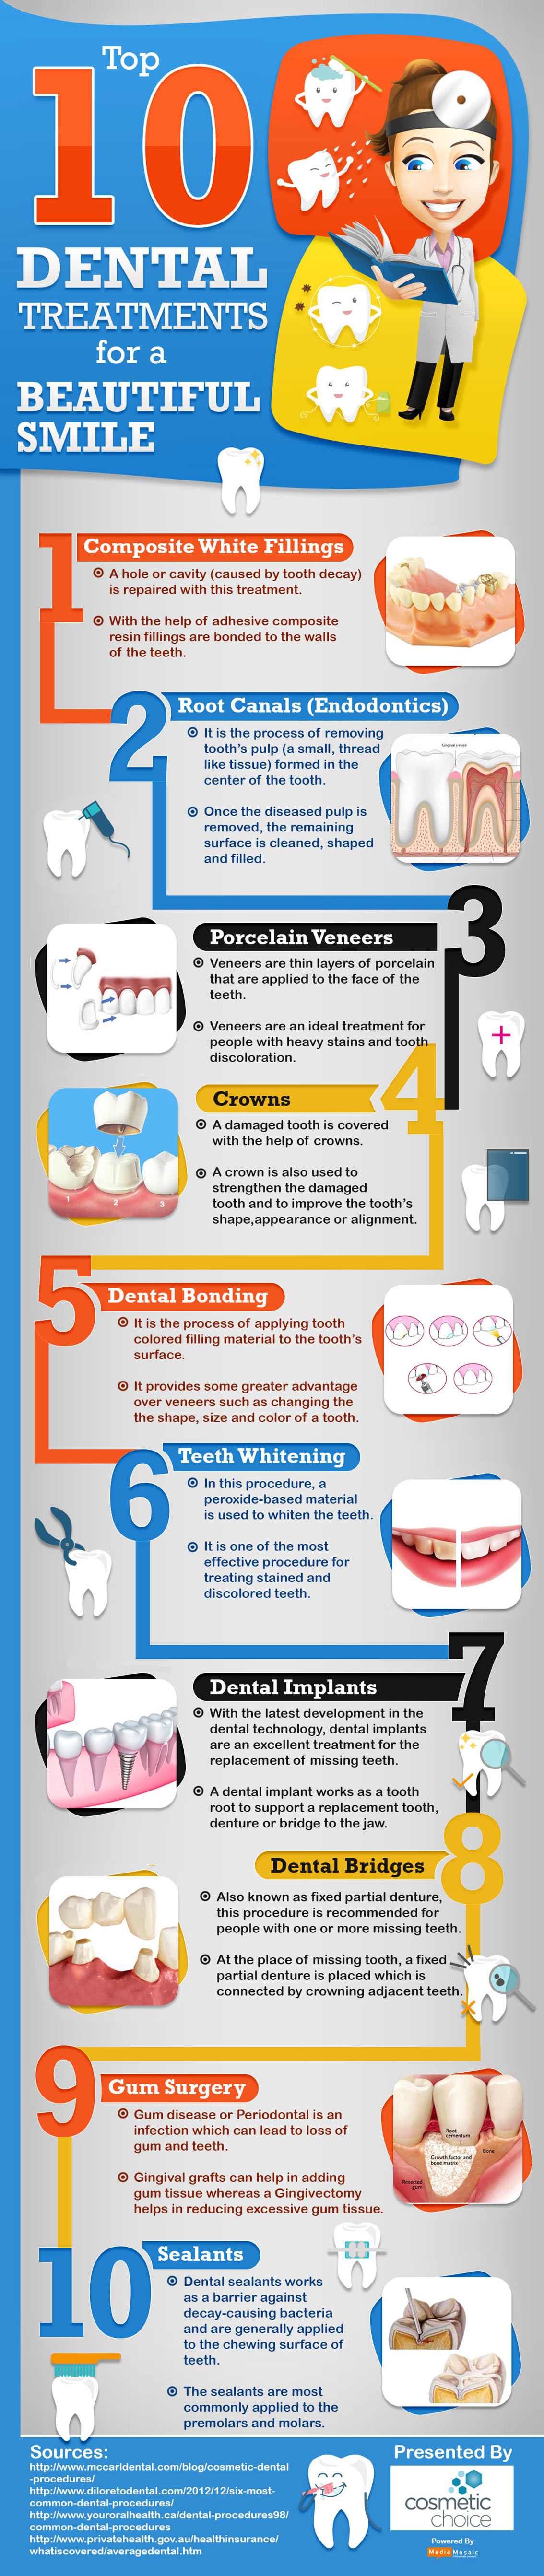 Dental Procedures for a Beautiful Smile Infographic